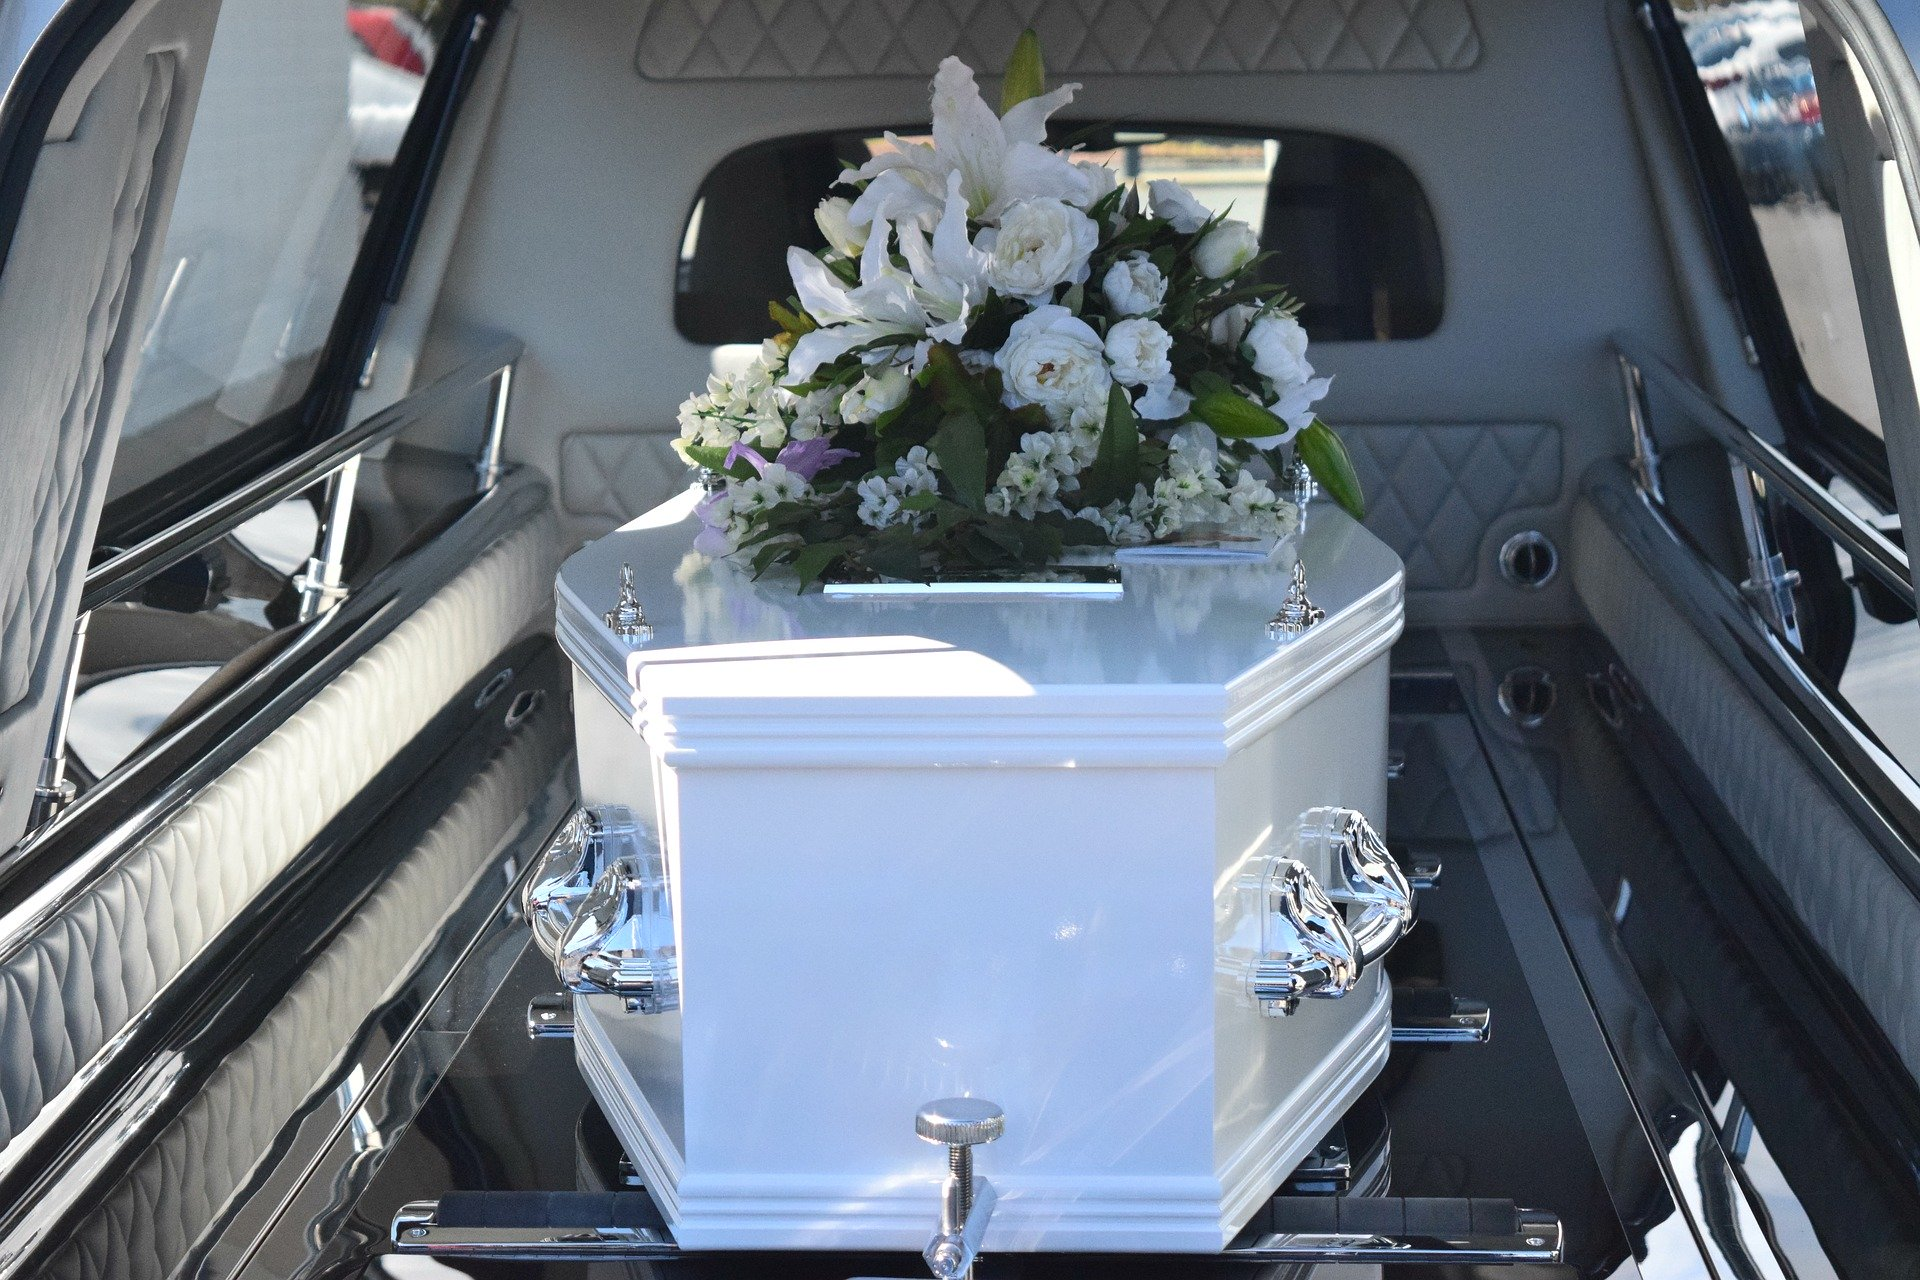 I Saw My Own Funeral or How to Build Purposeful Life